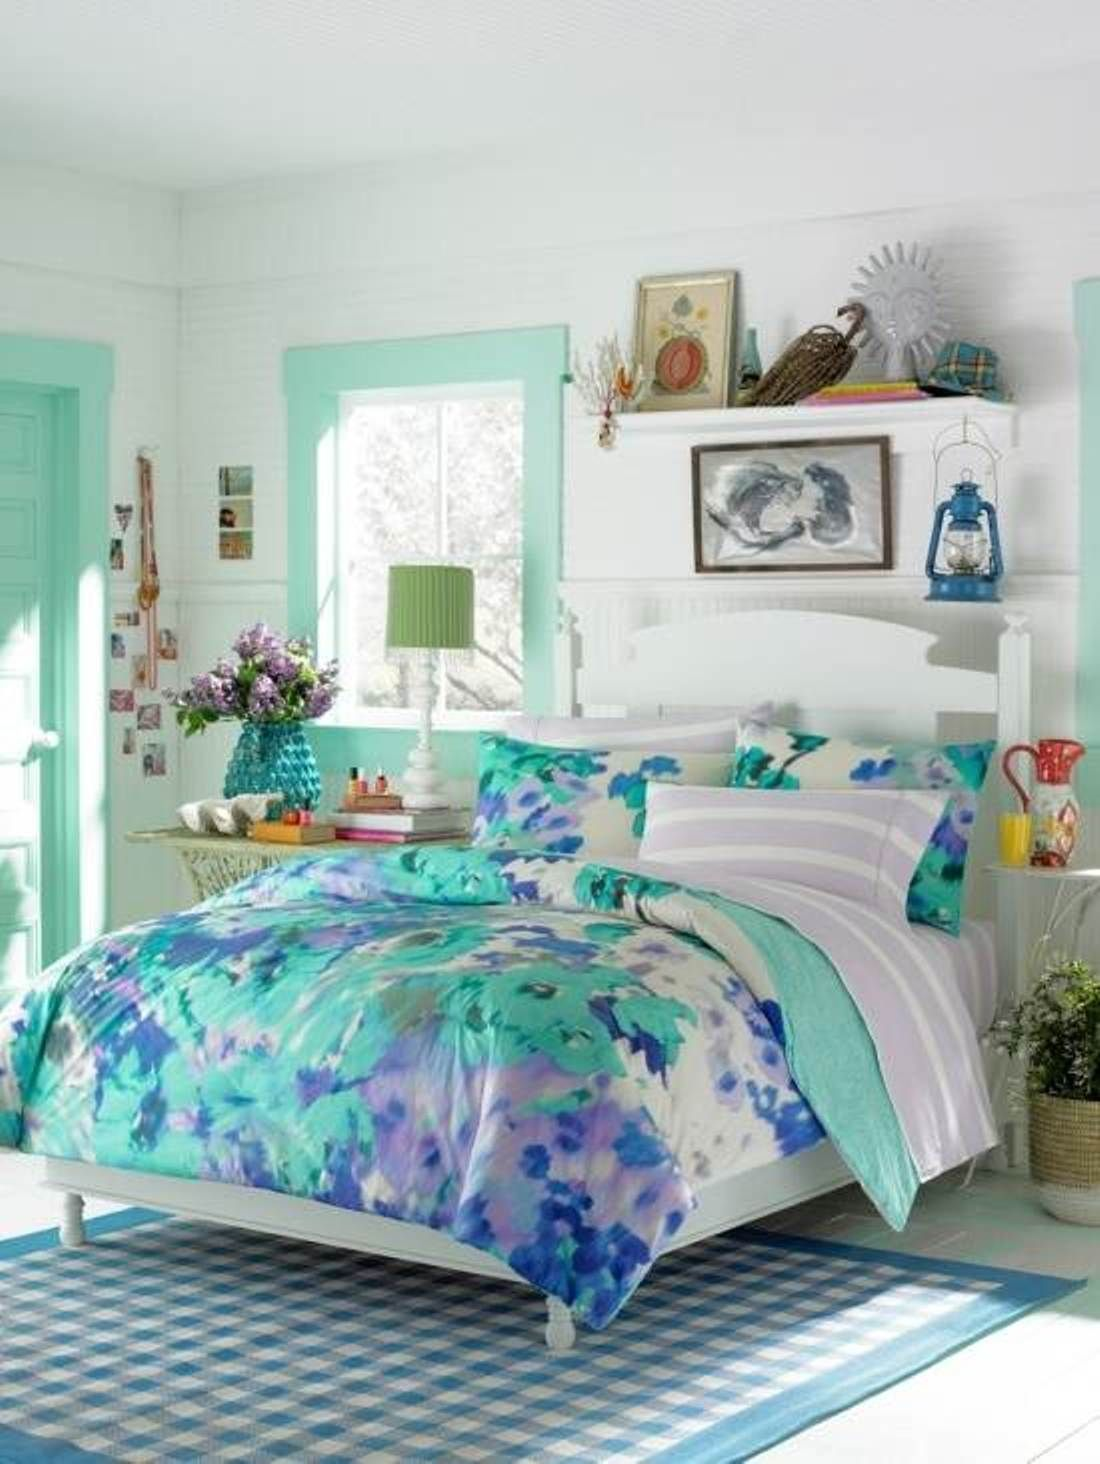 29 Abnormal Bed Designs And Bedroom Decorating Ideas Girls Blue